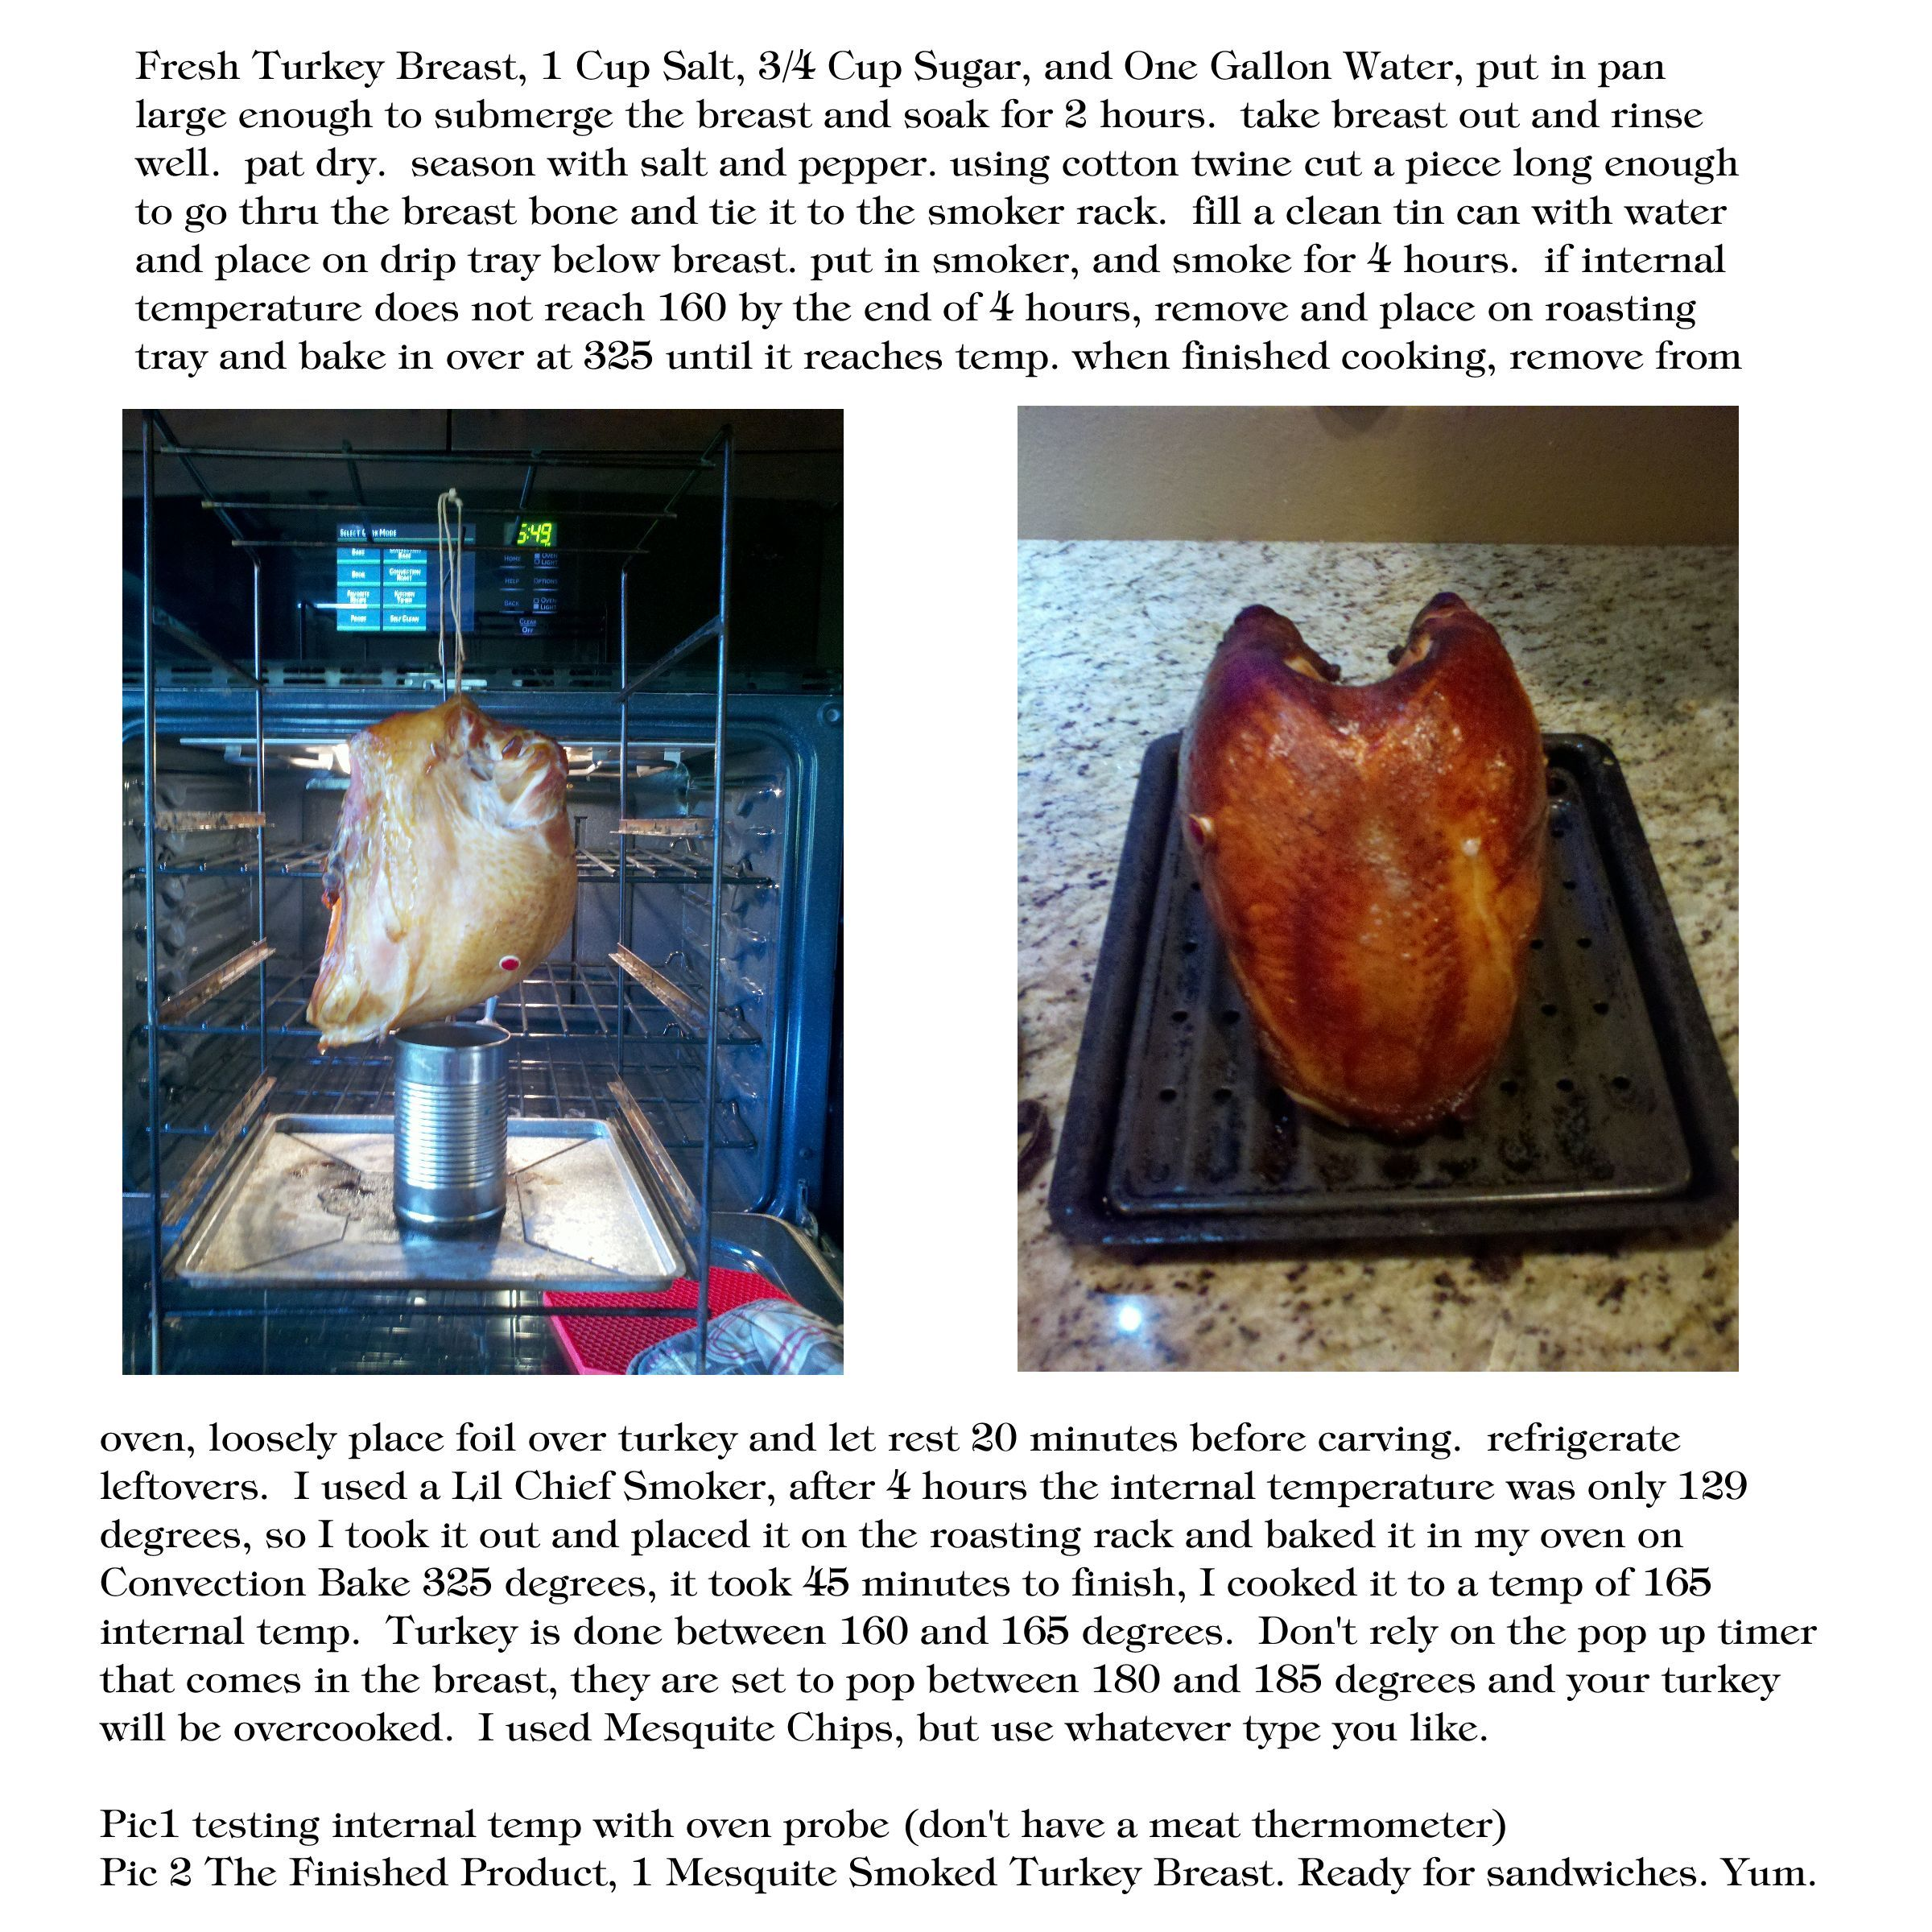 Smoked Turkey Breast How To Lil Chief Smoker Finish In Oven